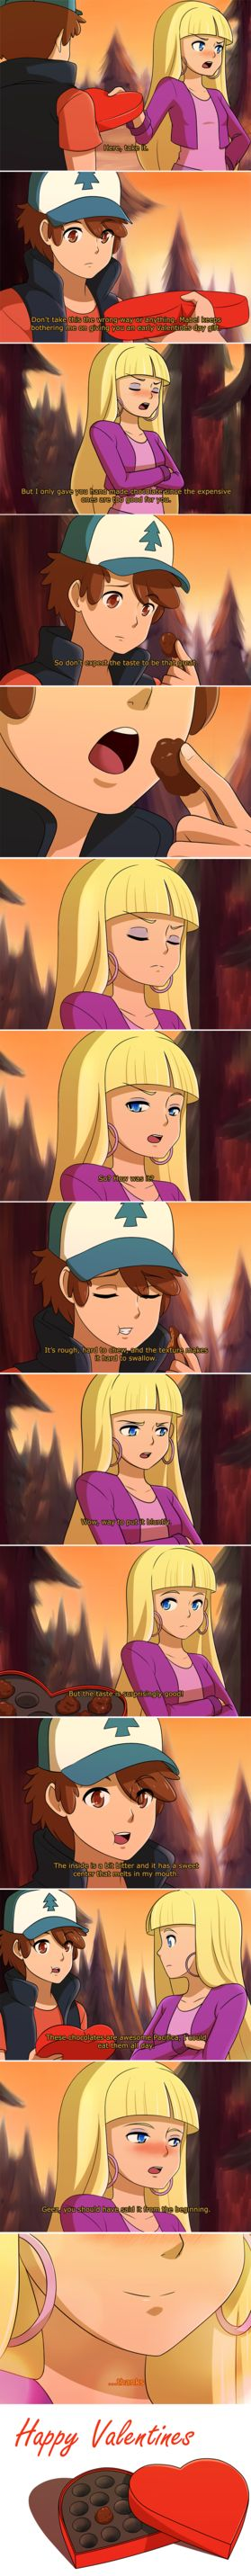 Gravity Falls - Valentines by Mgx0 on DeviantArt ... Dipper and Pacifica... Yes, i ship it ❤(/^▽^)/